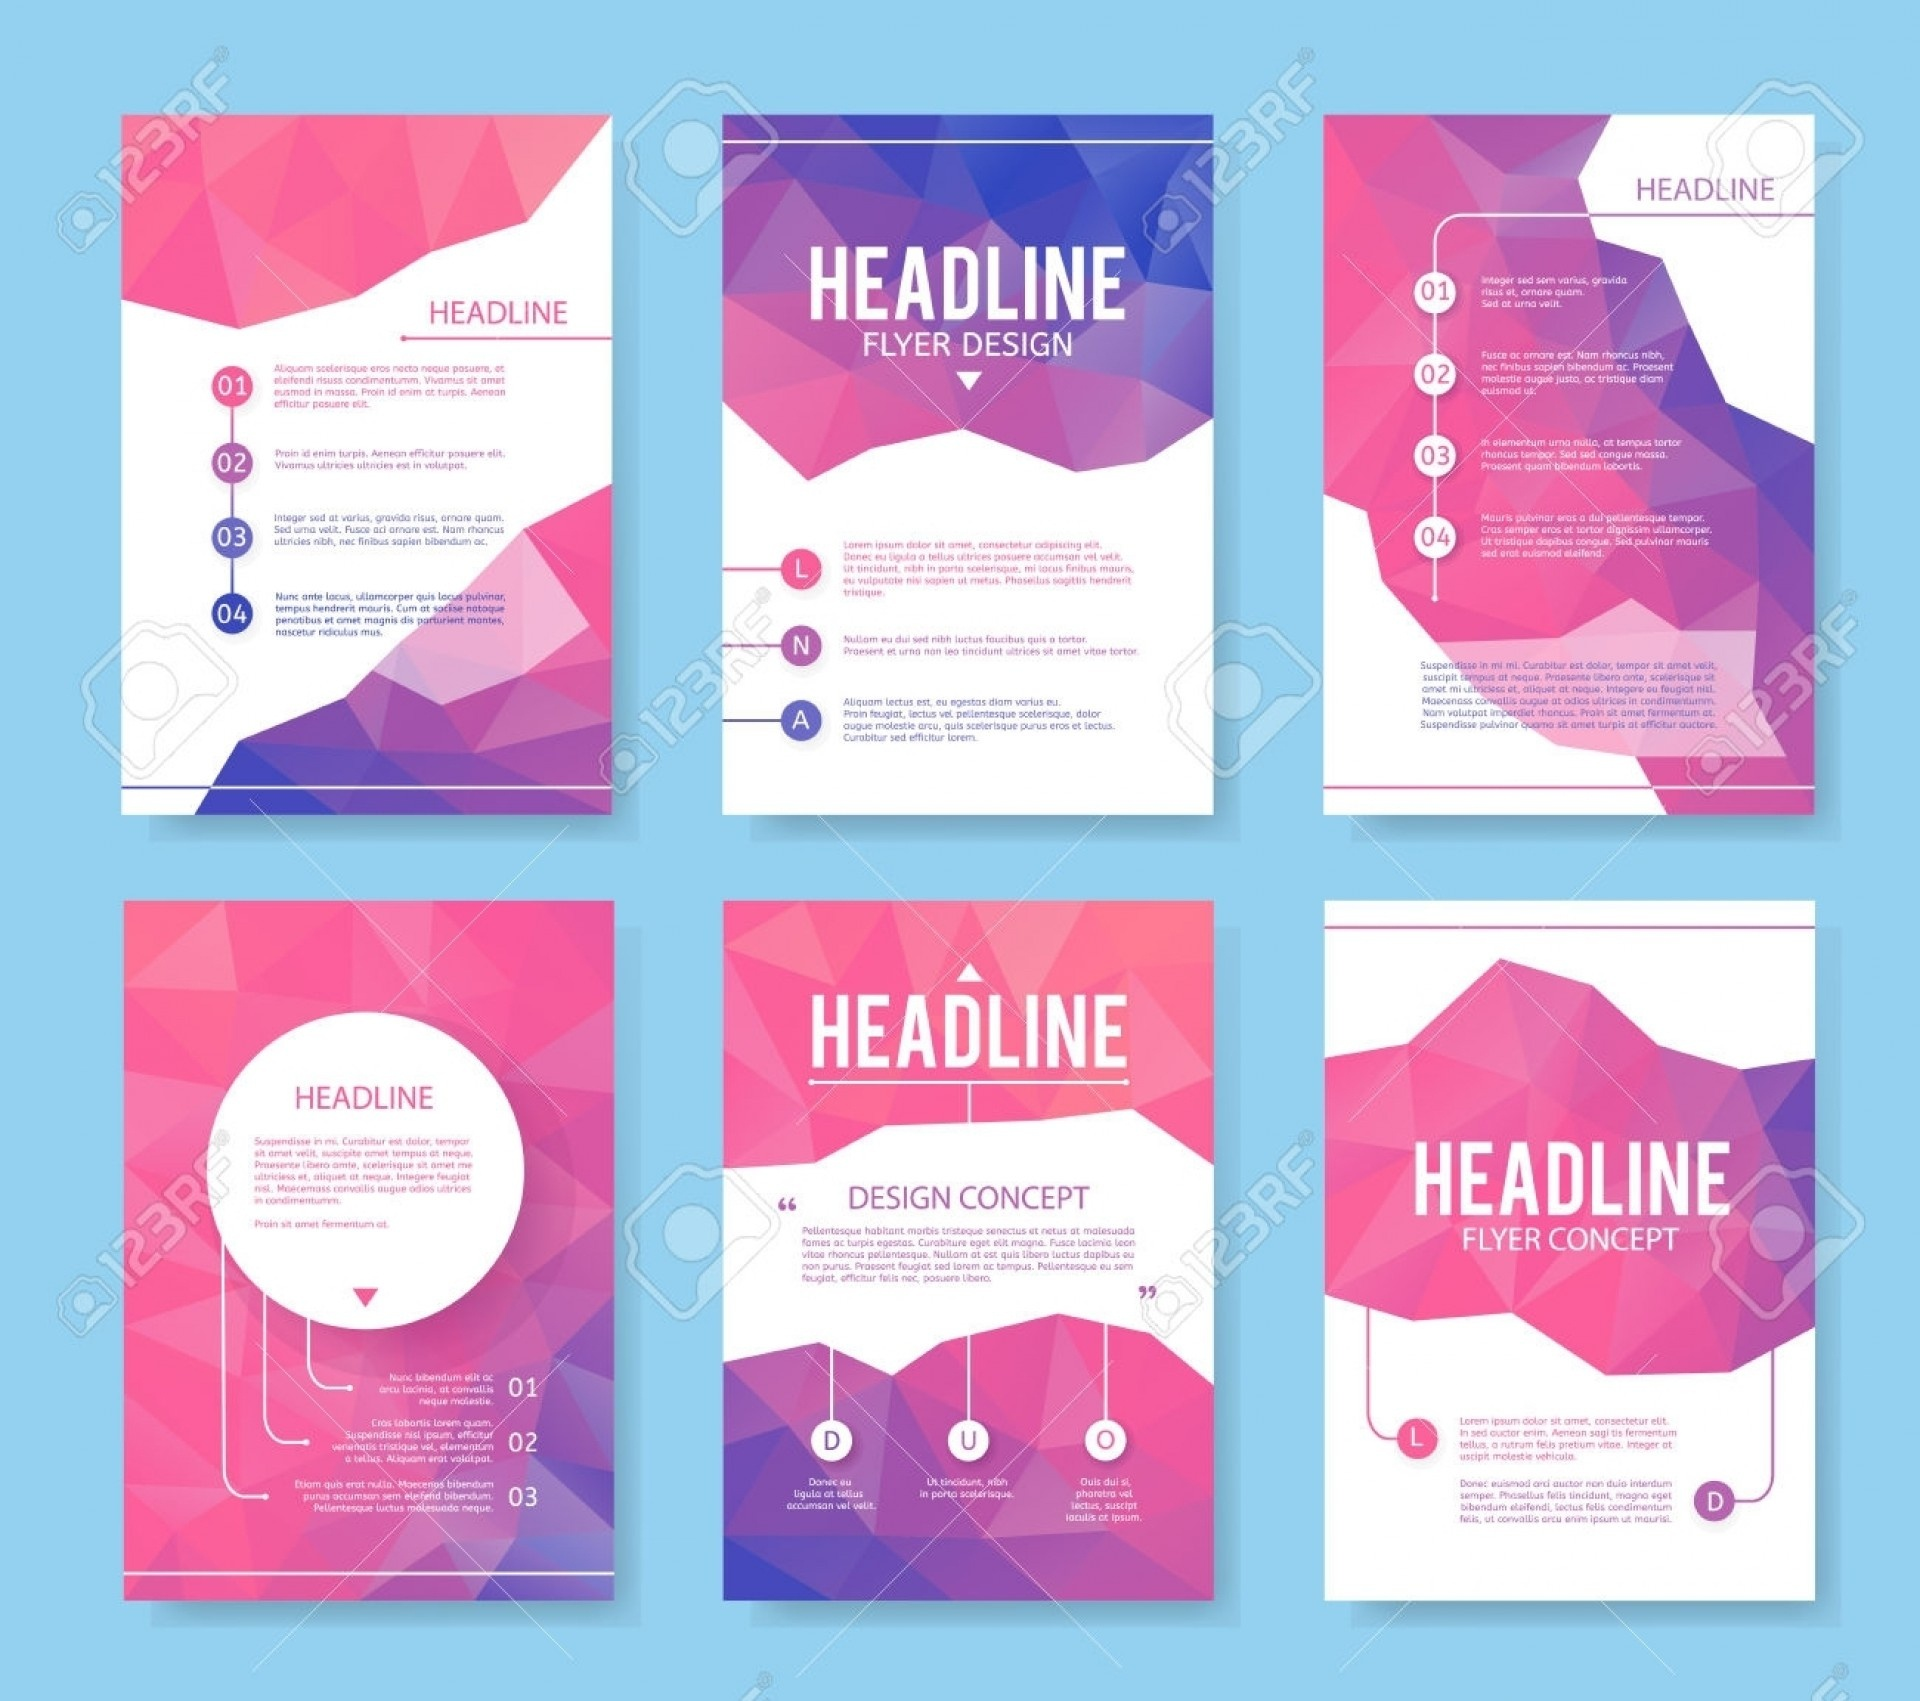 010 Template Ideas Brochure Country Report2X Free Printable - Free Printable Brochure Templates